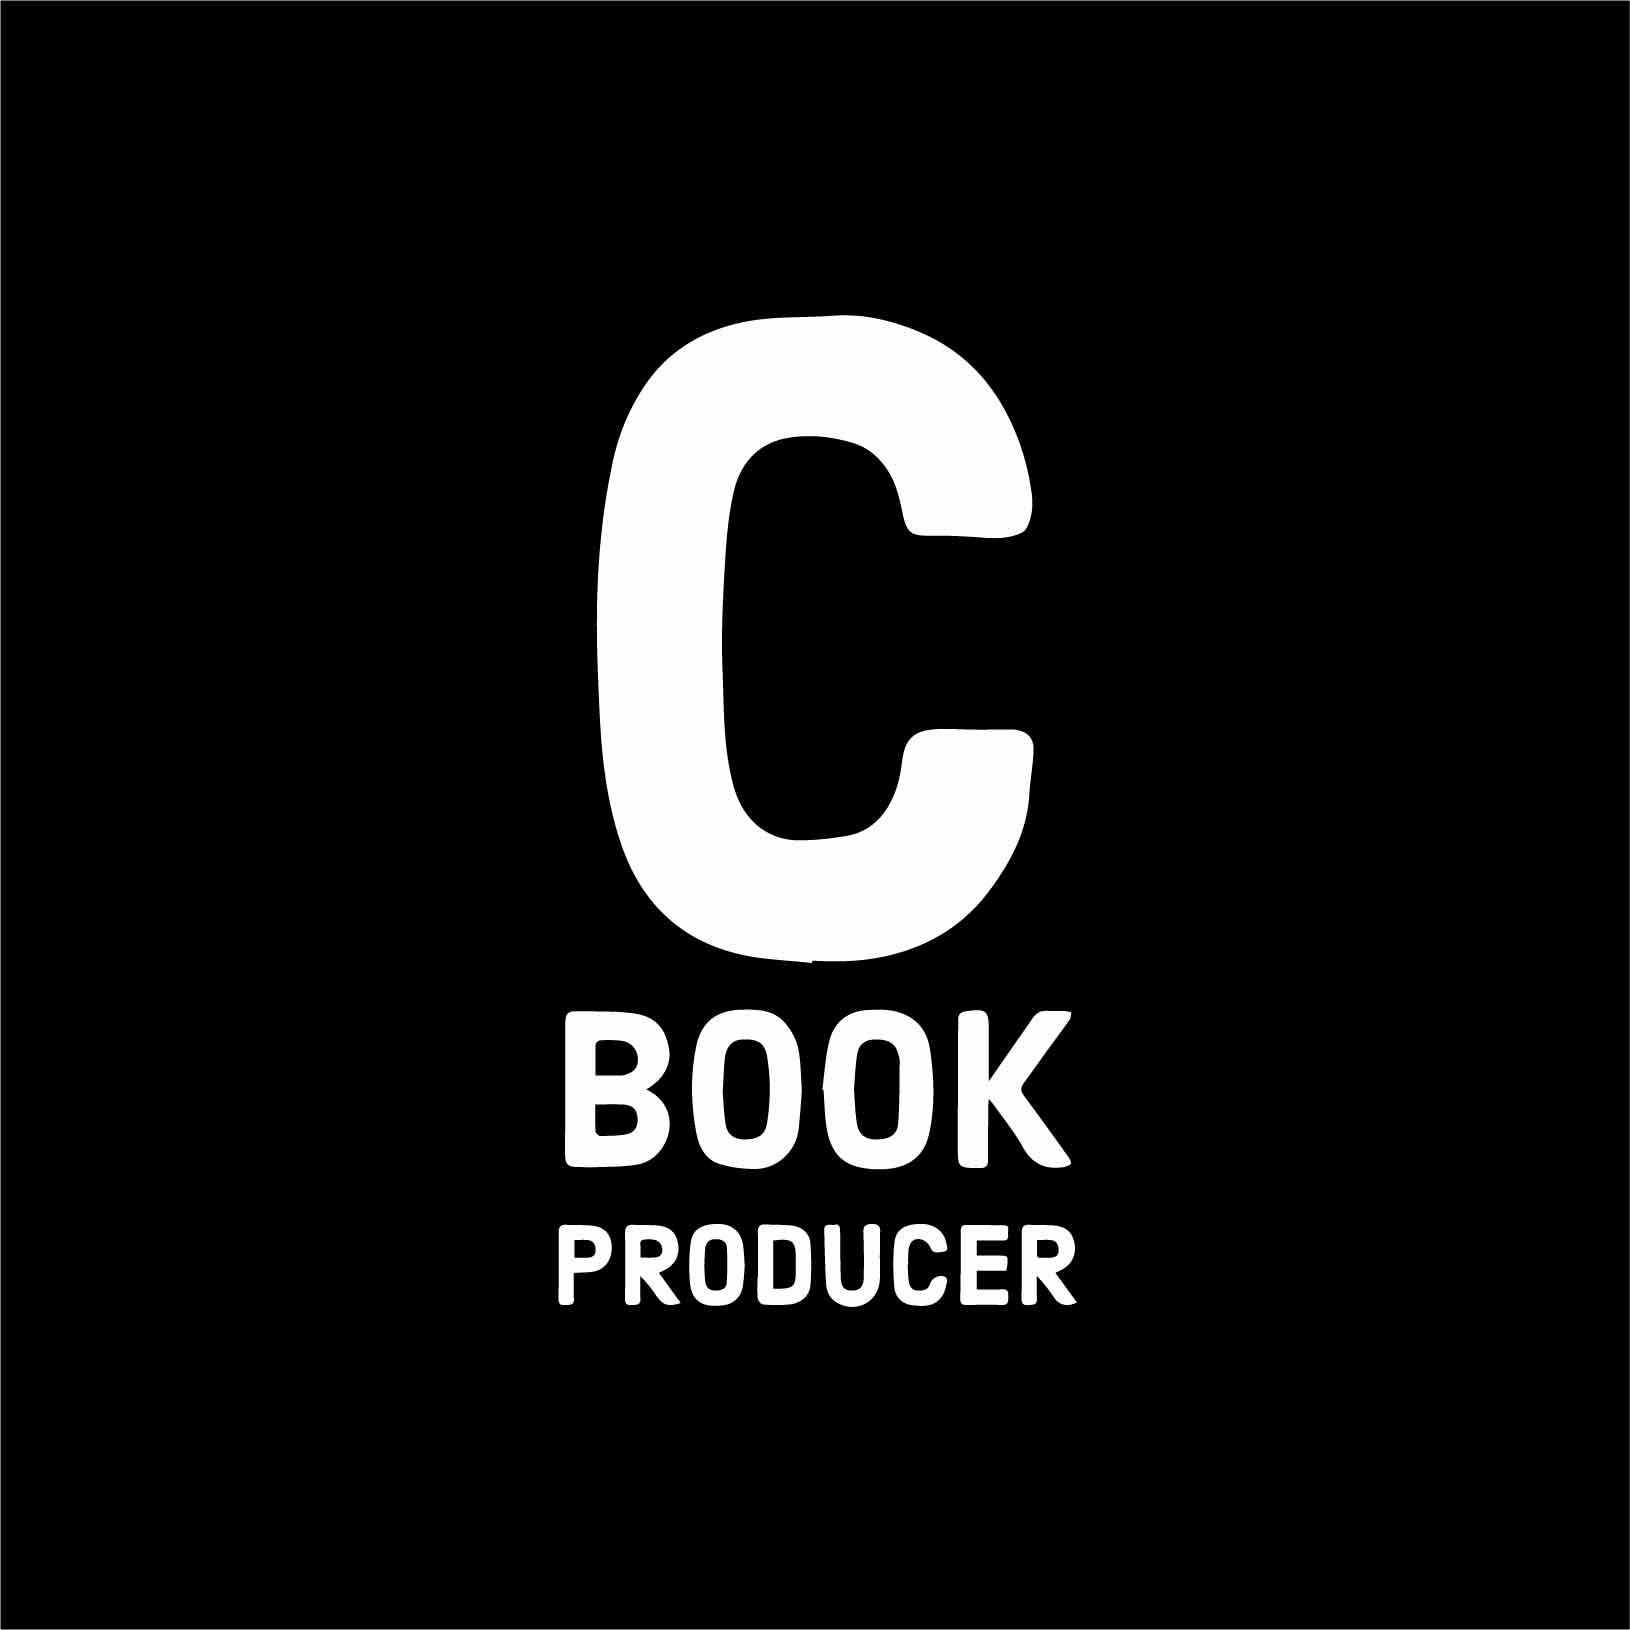 C Book Producer